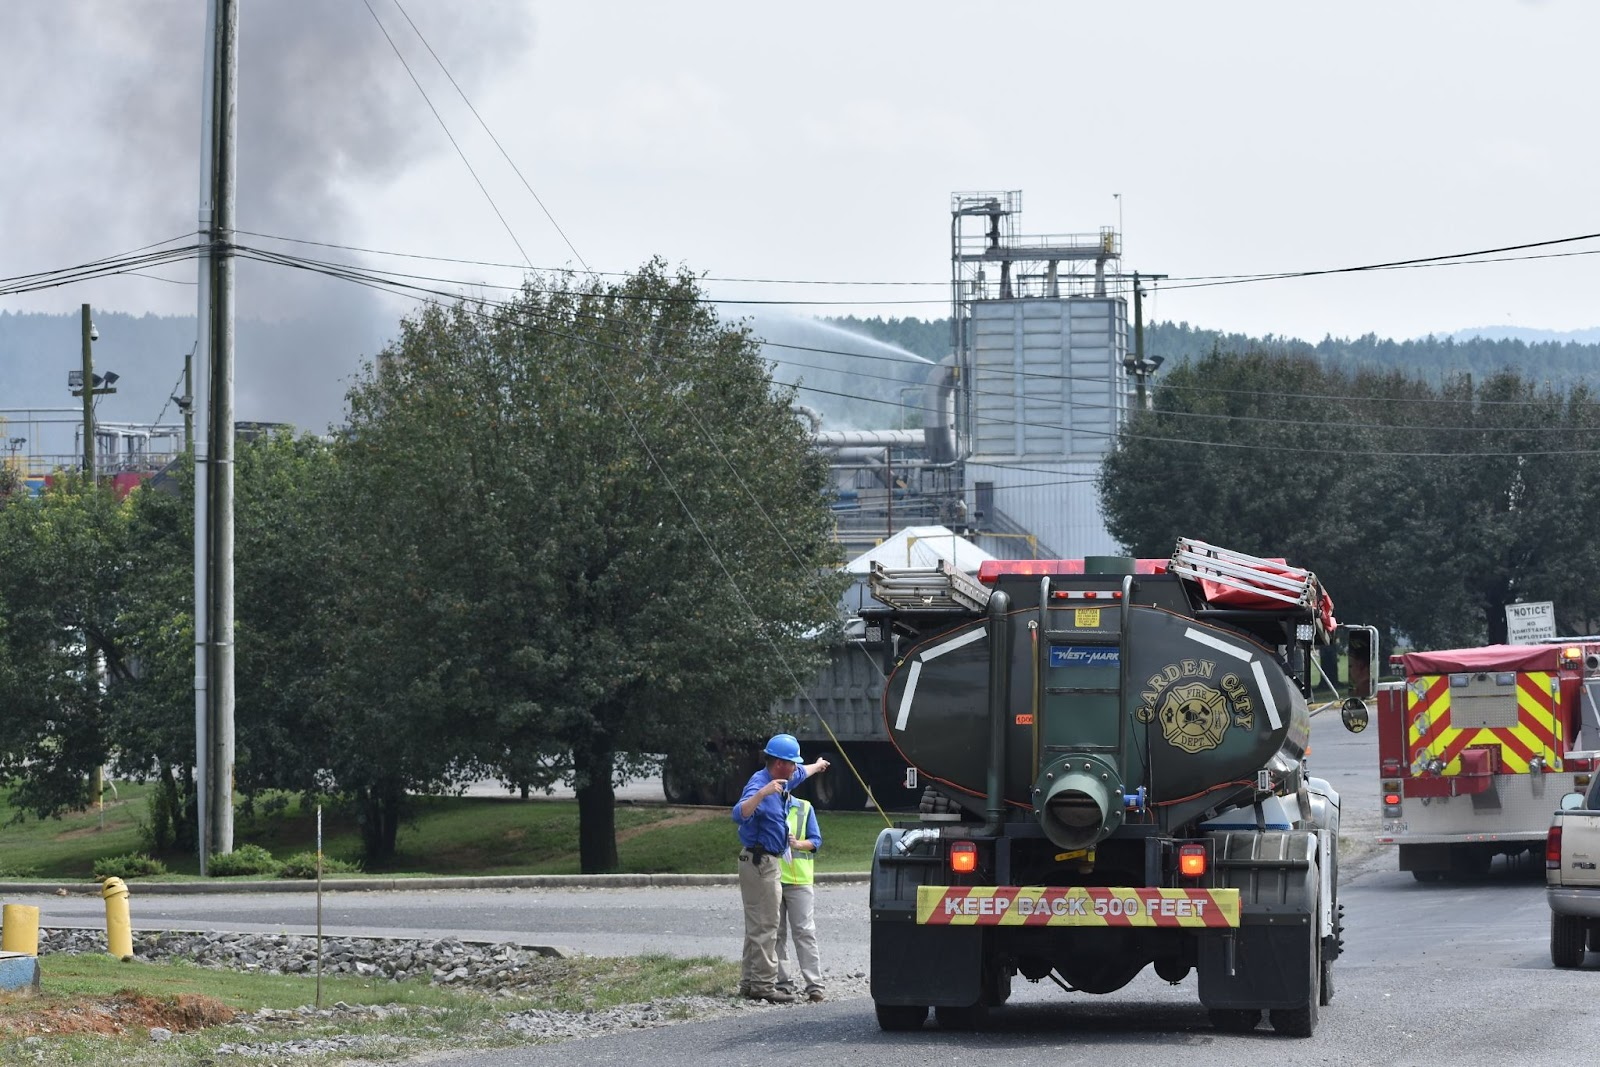 Building in flames at Tyson/River Valley Ingredients plant near Hanceville